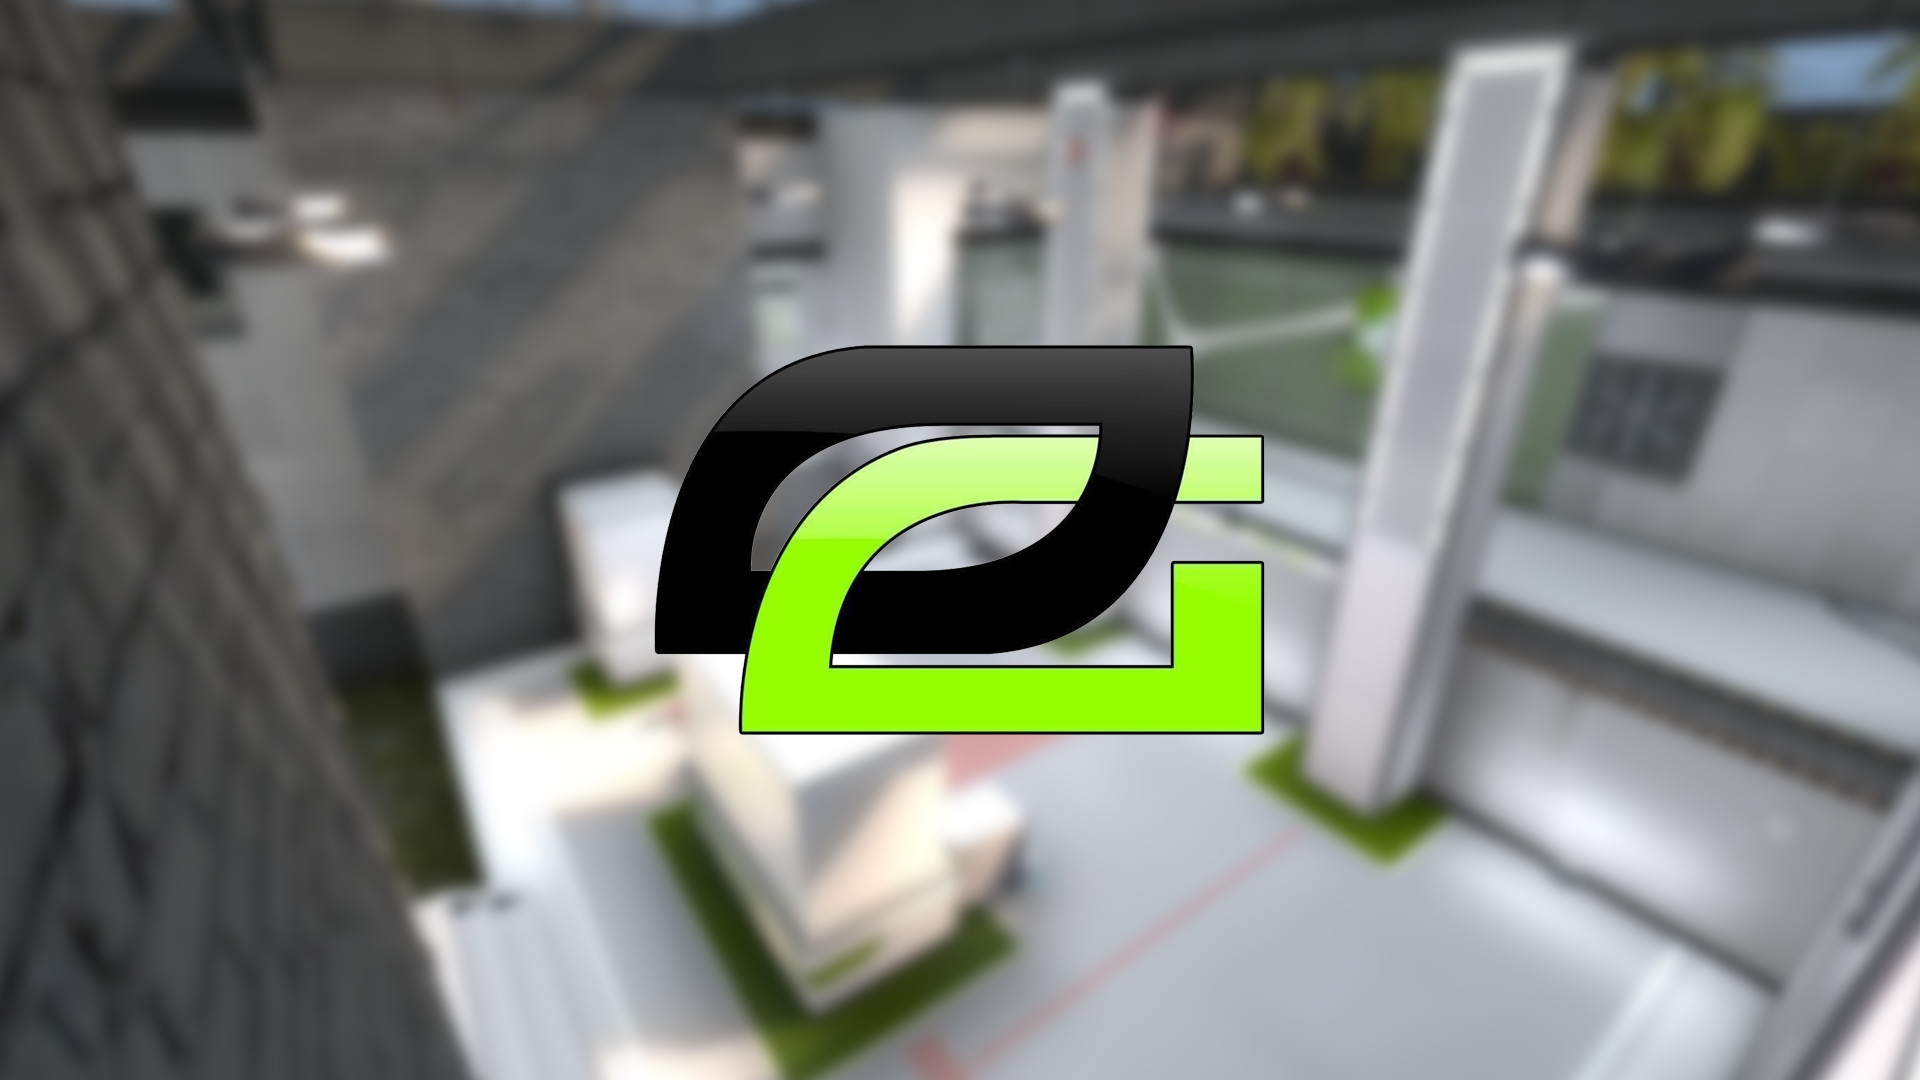 1920x1080 Optic Gaming Season A Site